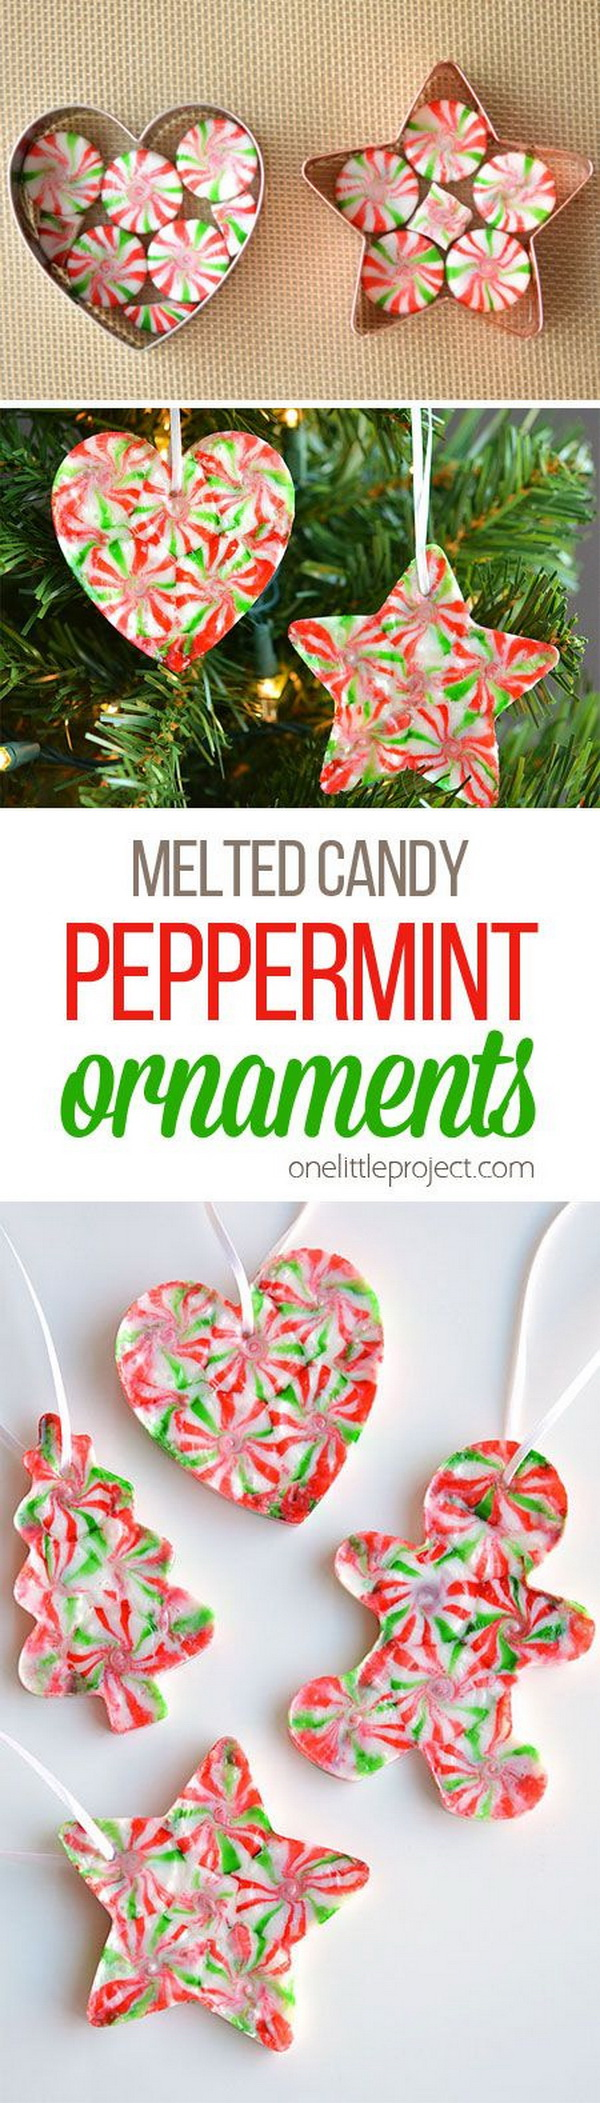 Melted Peppermint Candy Ornaments. These peppermint candy ornaments are fun and inexpensive to make. They are the great project both as Christmas gifts or as ornaments for your tree.